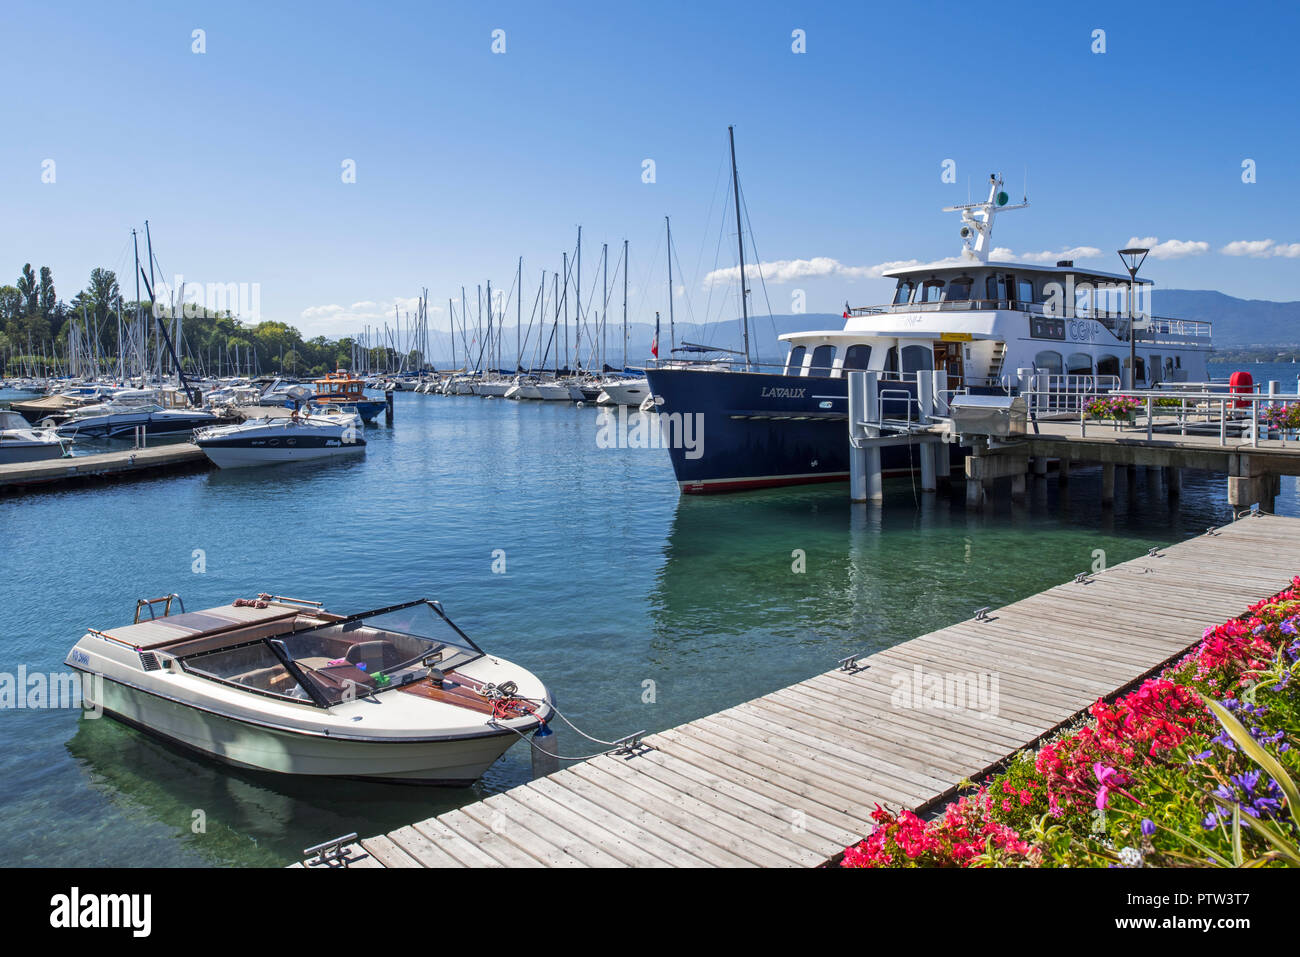 CGN passenger ferry boat Lavaux and sailing boats in the marina at Yvoire along Lake Geneva / lac Léman, Haute-Savoie, France - Stock Image